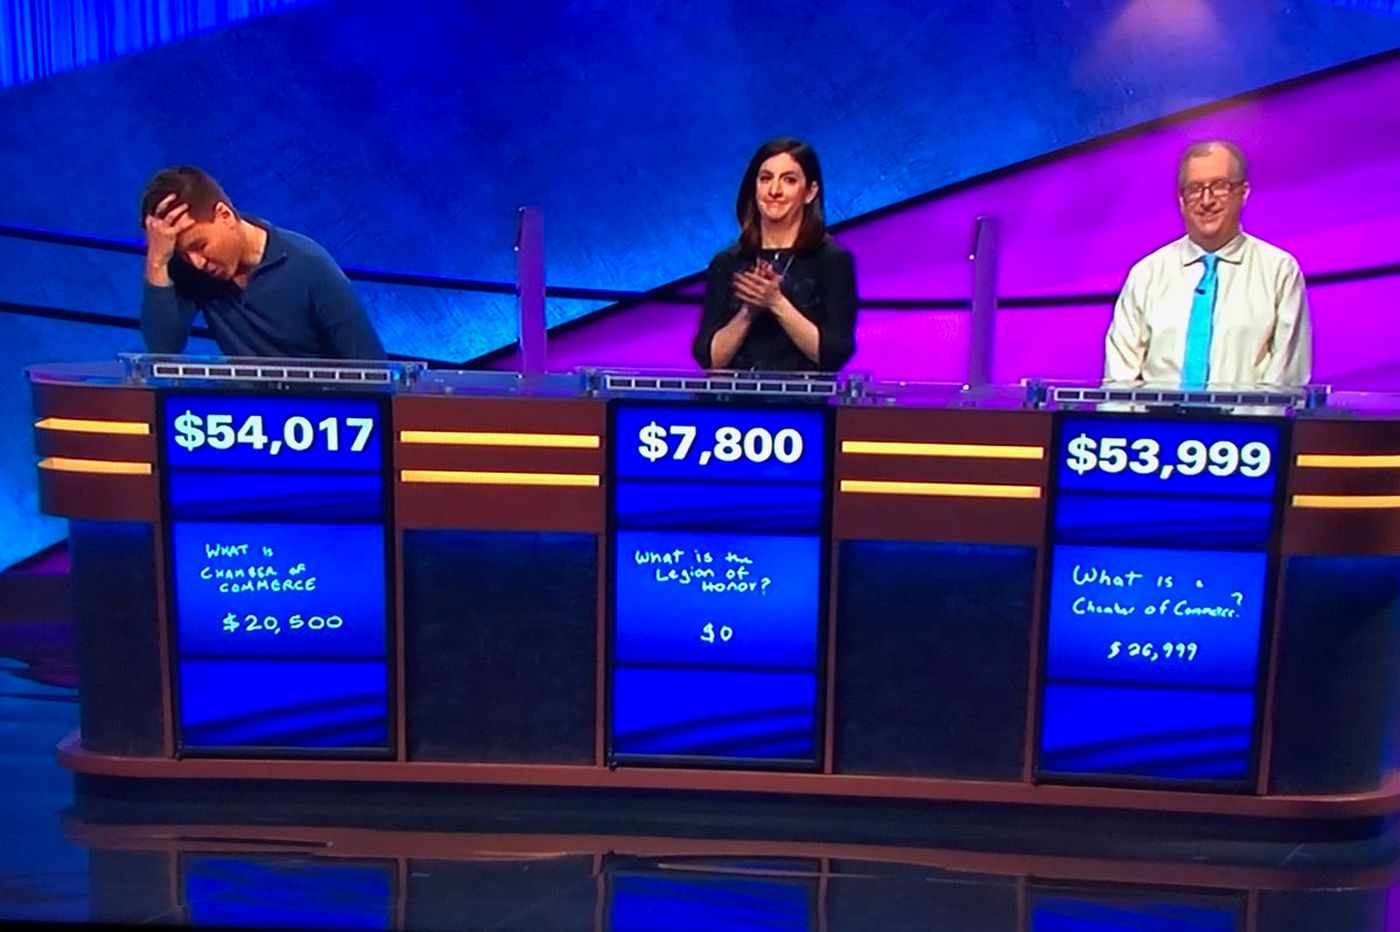 'Jeopardy!' champ James Holzhauer defeats Philly native by just $18